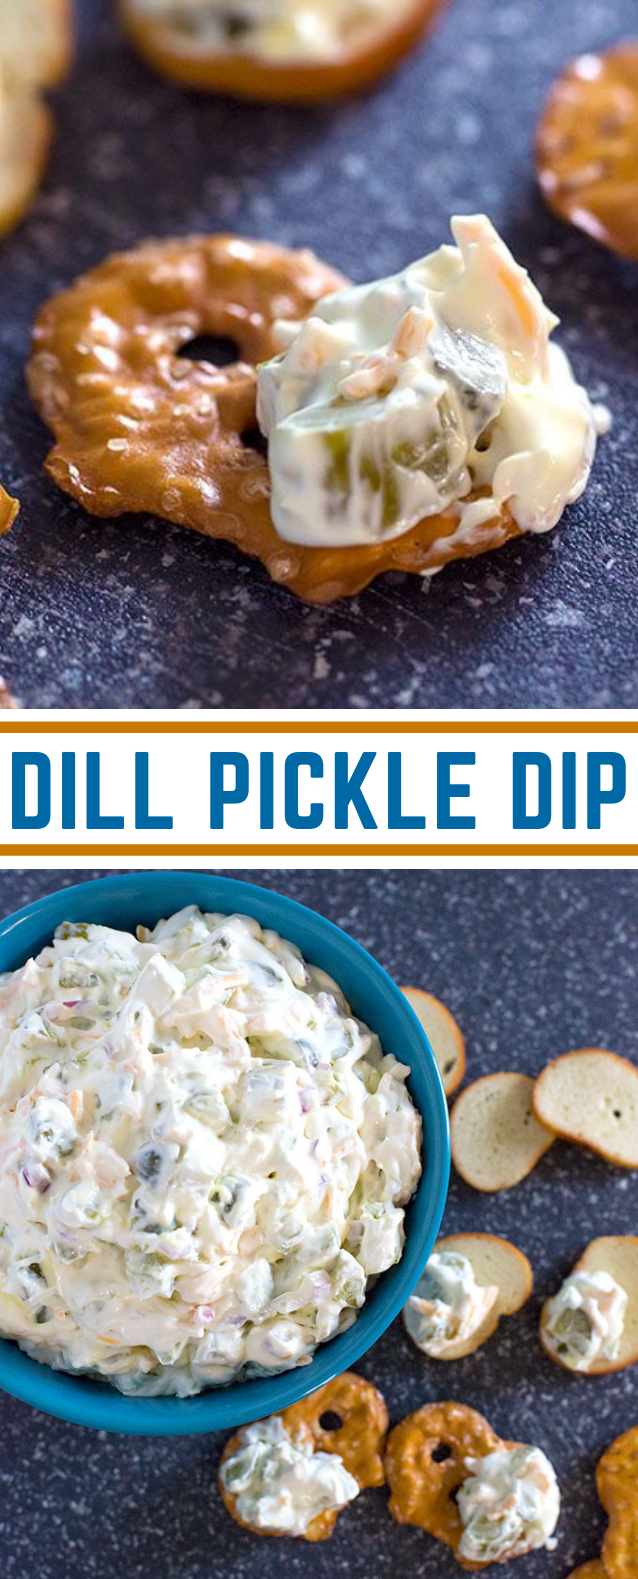 DILL PICKLE DIP #appetizer #brunch